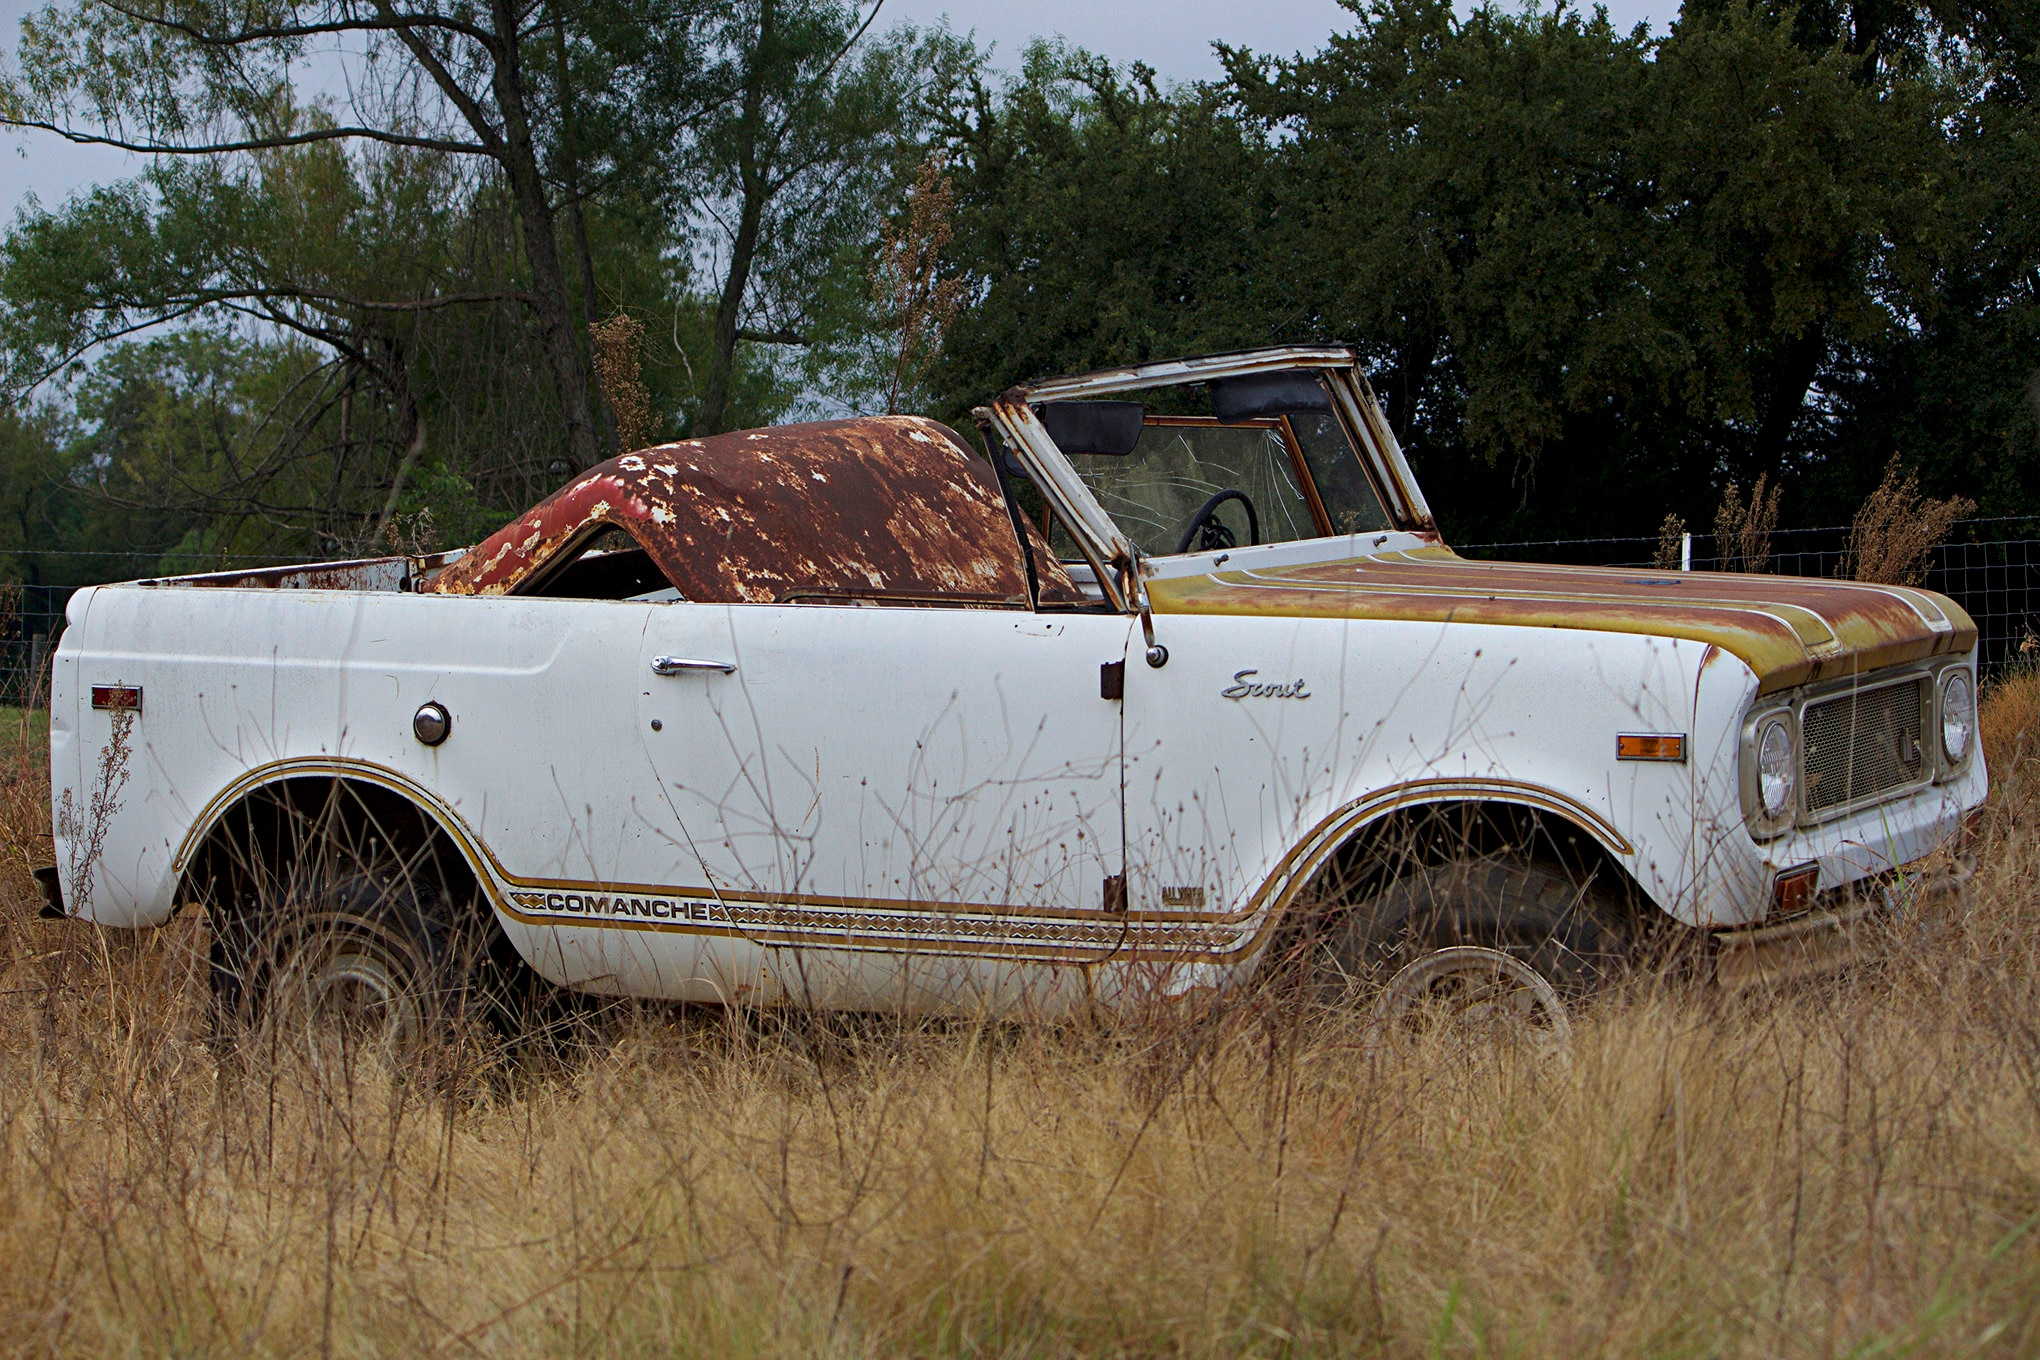 medium resolution of  the best side of the 71 international scout comanche only hints at the abuse and